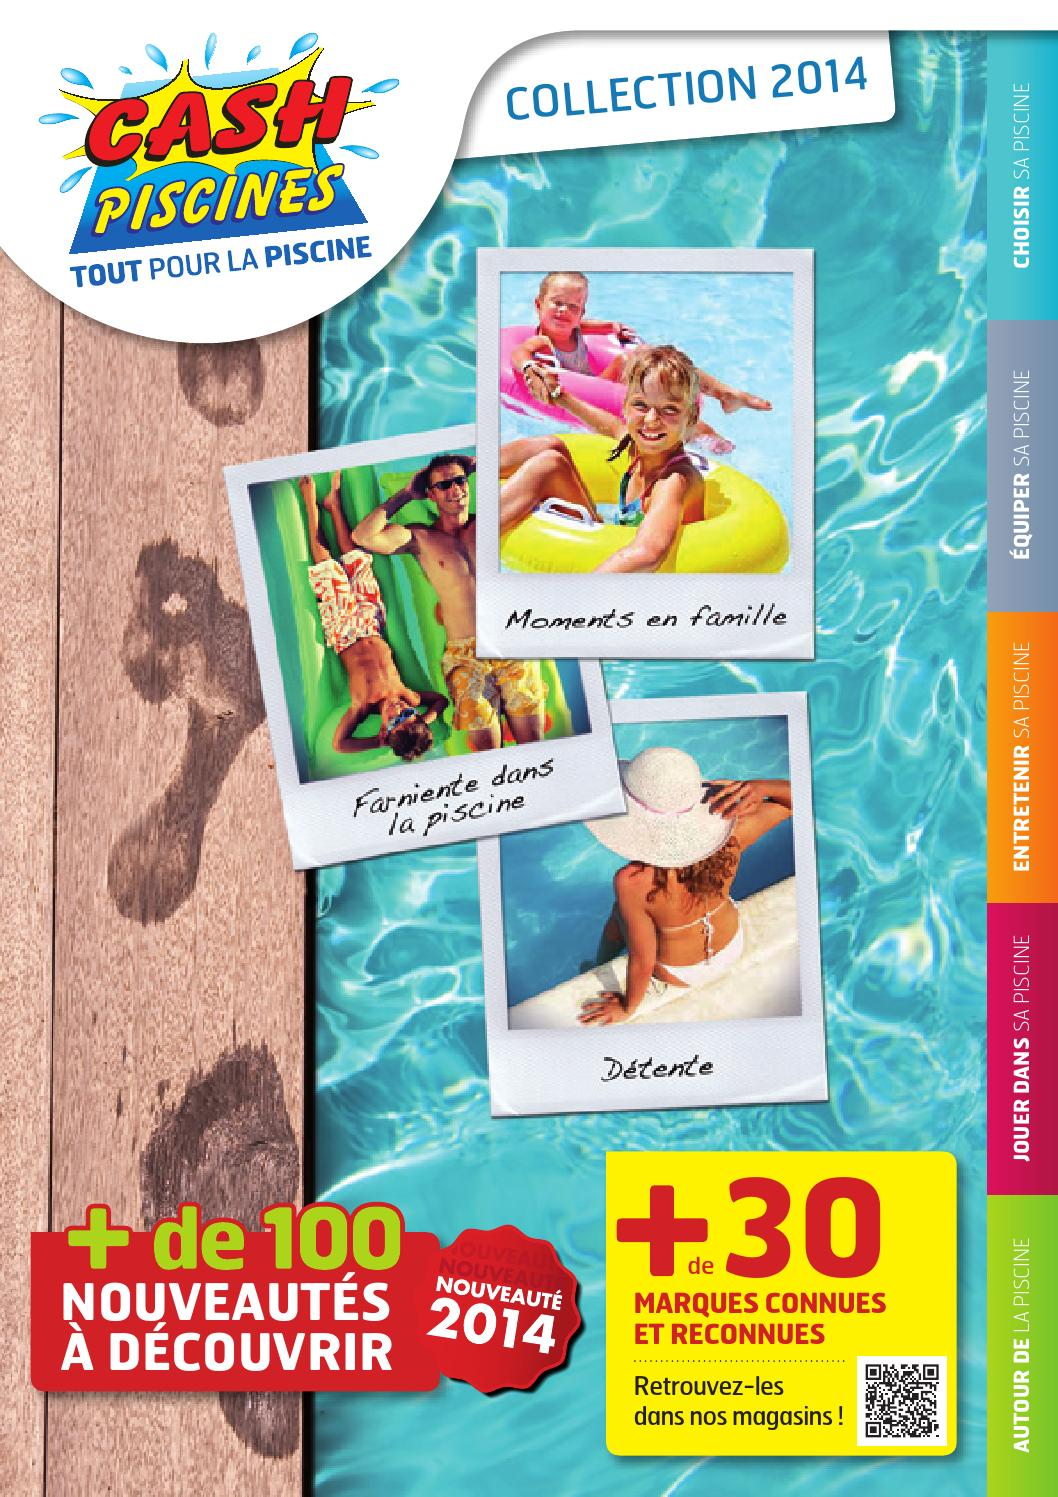 Cash Piscine Sollies Pont : piscine, sollies, Piscines, Catalogue, Octave, Issuu